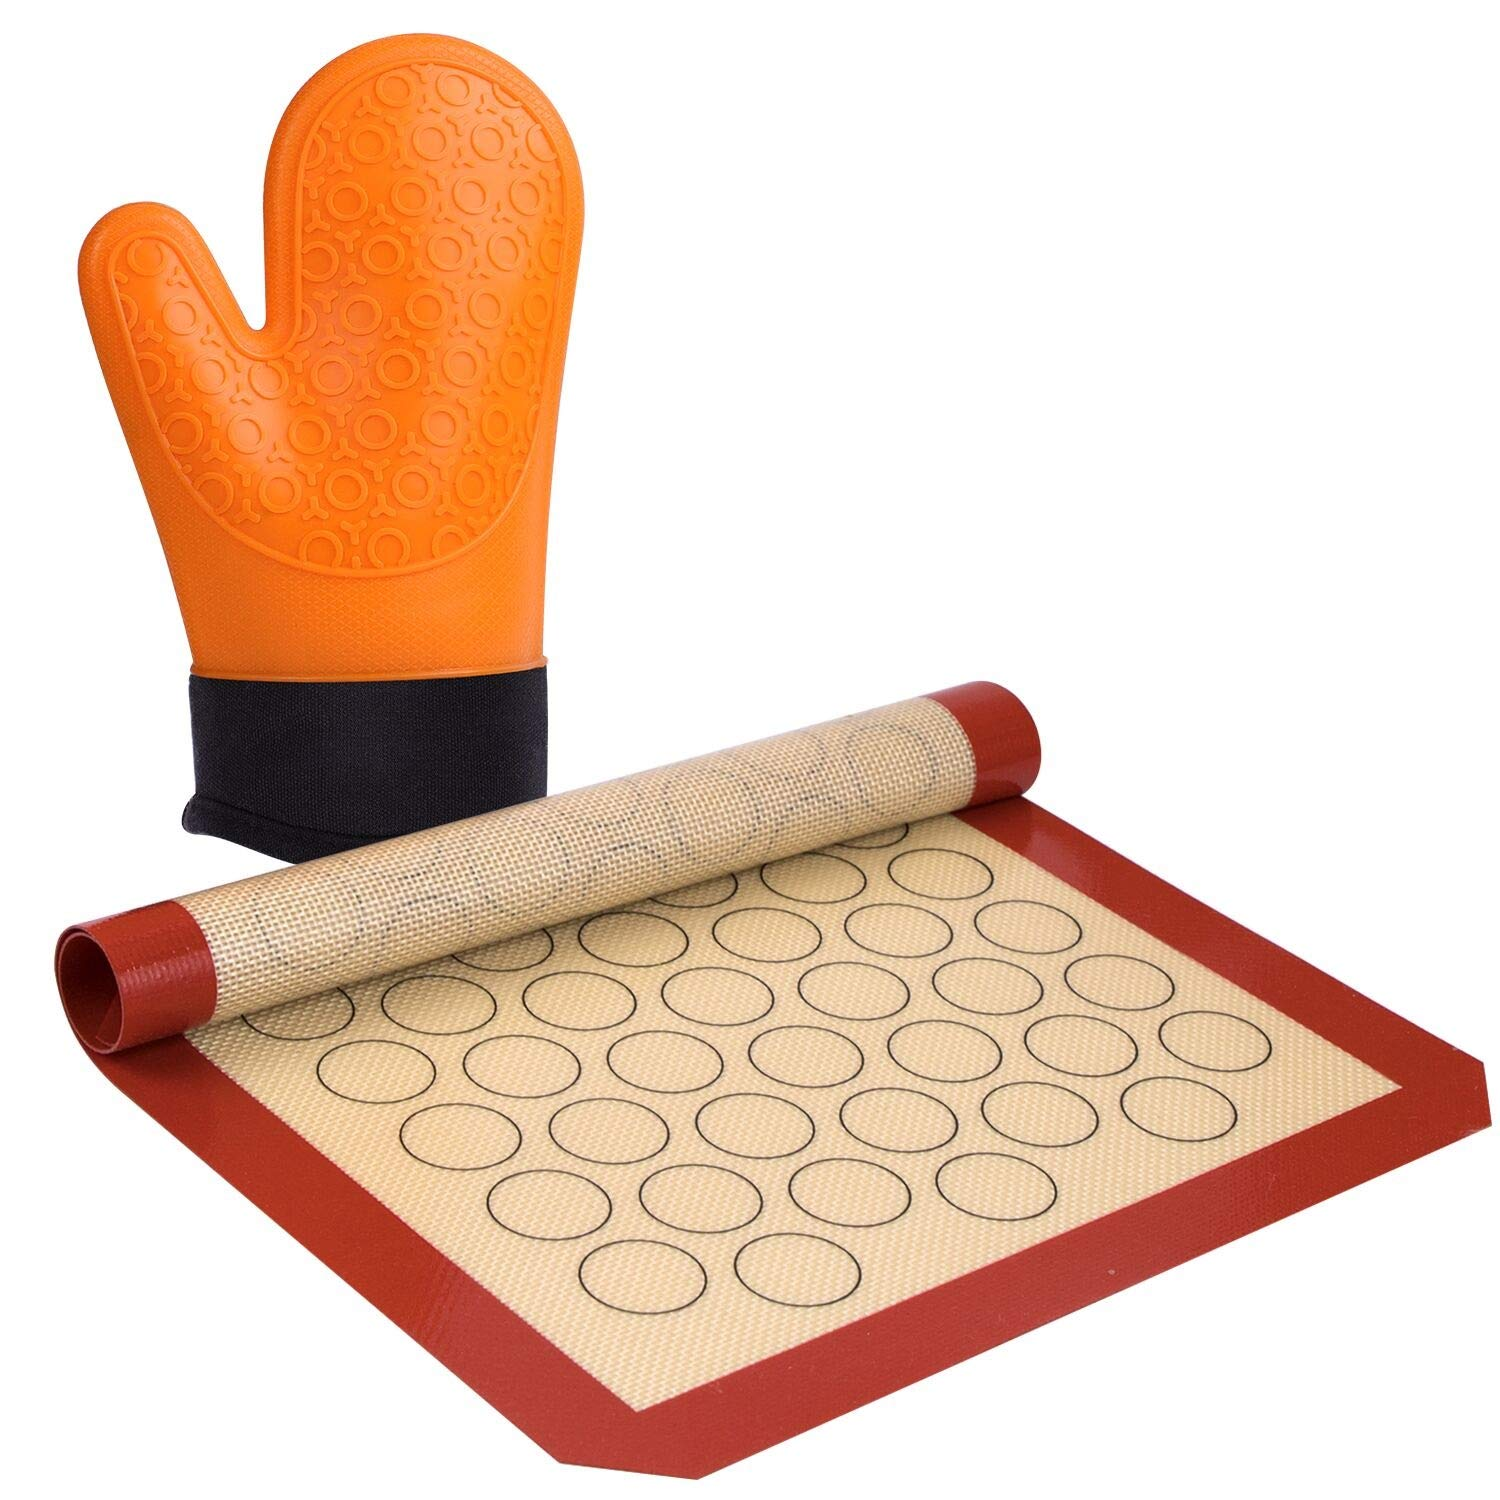 LIDODO Silicone Macaron Baking Mat&Oven Mitts-Stick Silicone Baking Mat-Non Stick Silicon Liner Bake Pans & Rolling-Set Baking Mat (Thick & Large 11 5/8'' x 16 1/2'') a Oven Mitts(11 inch)